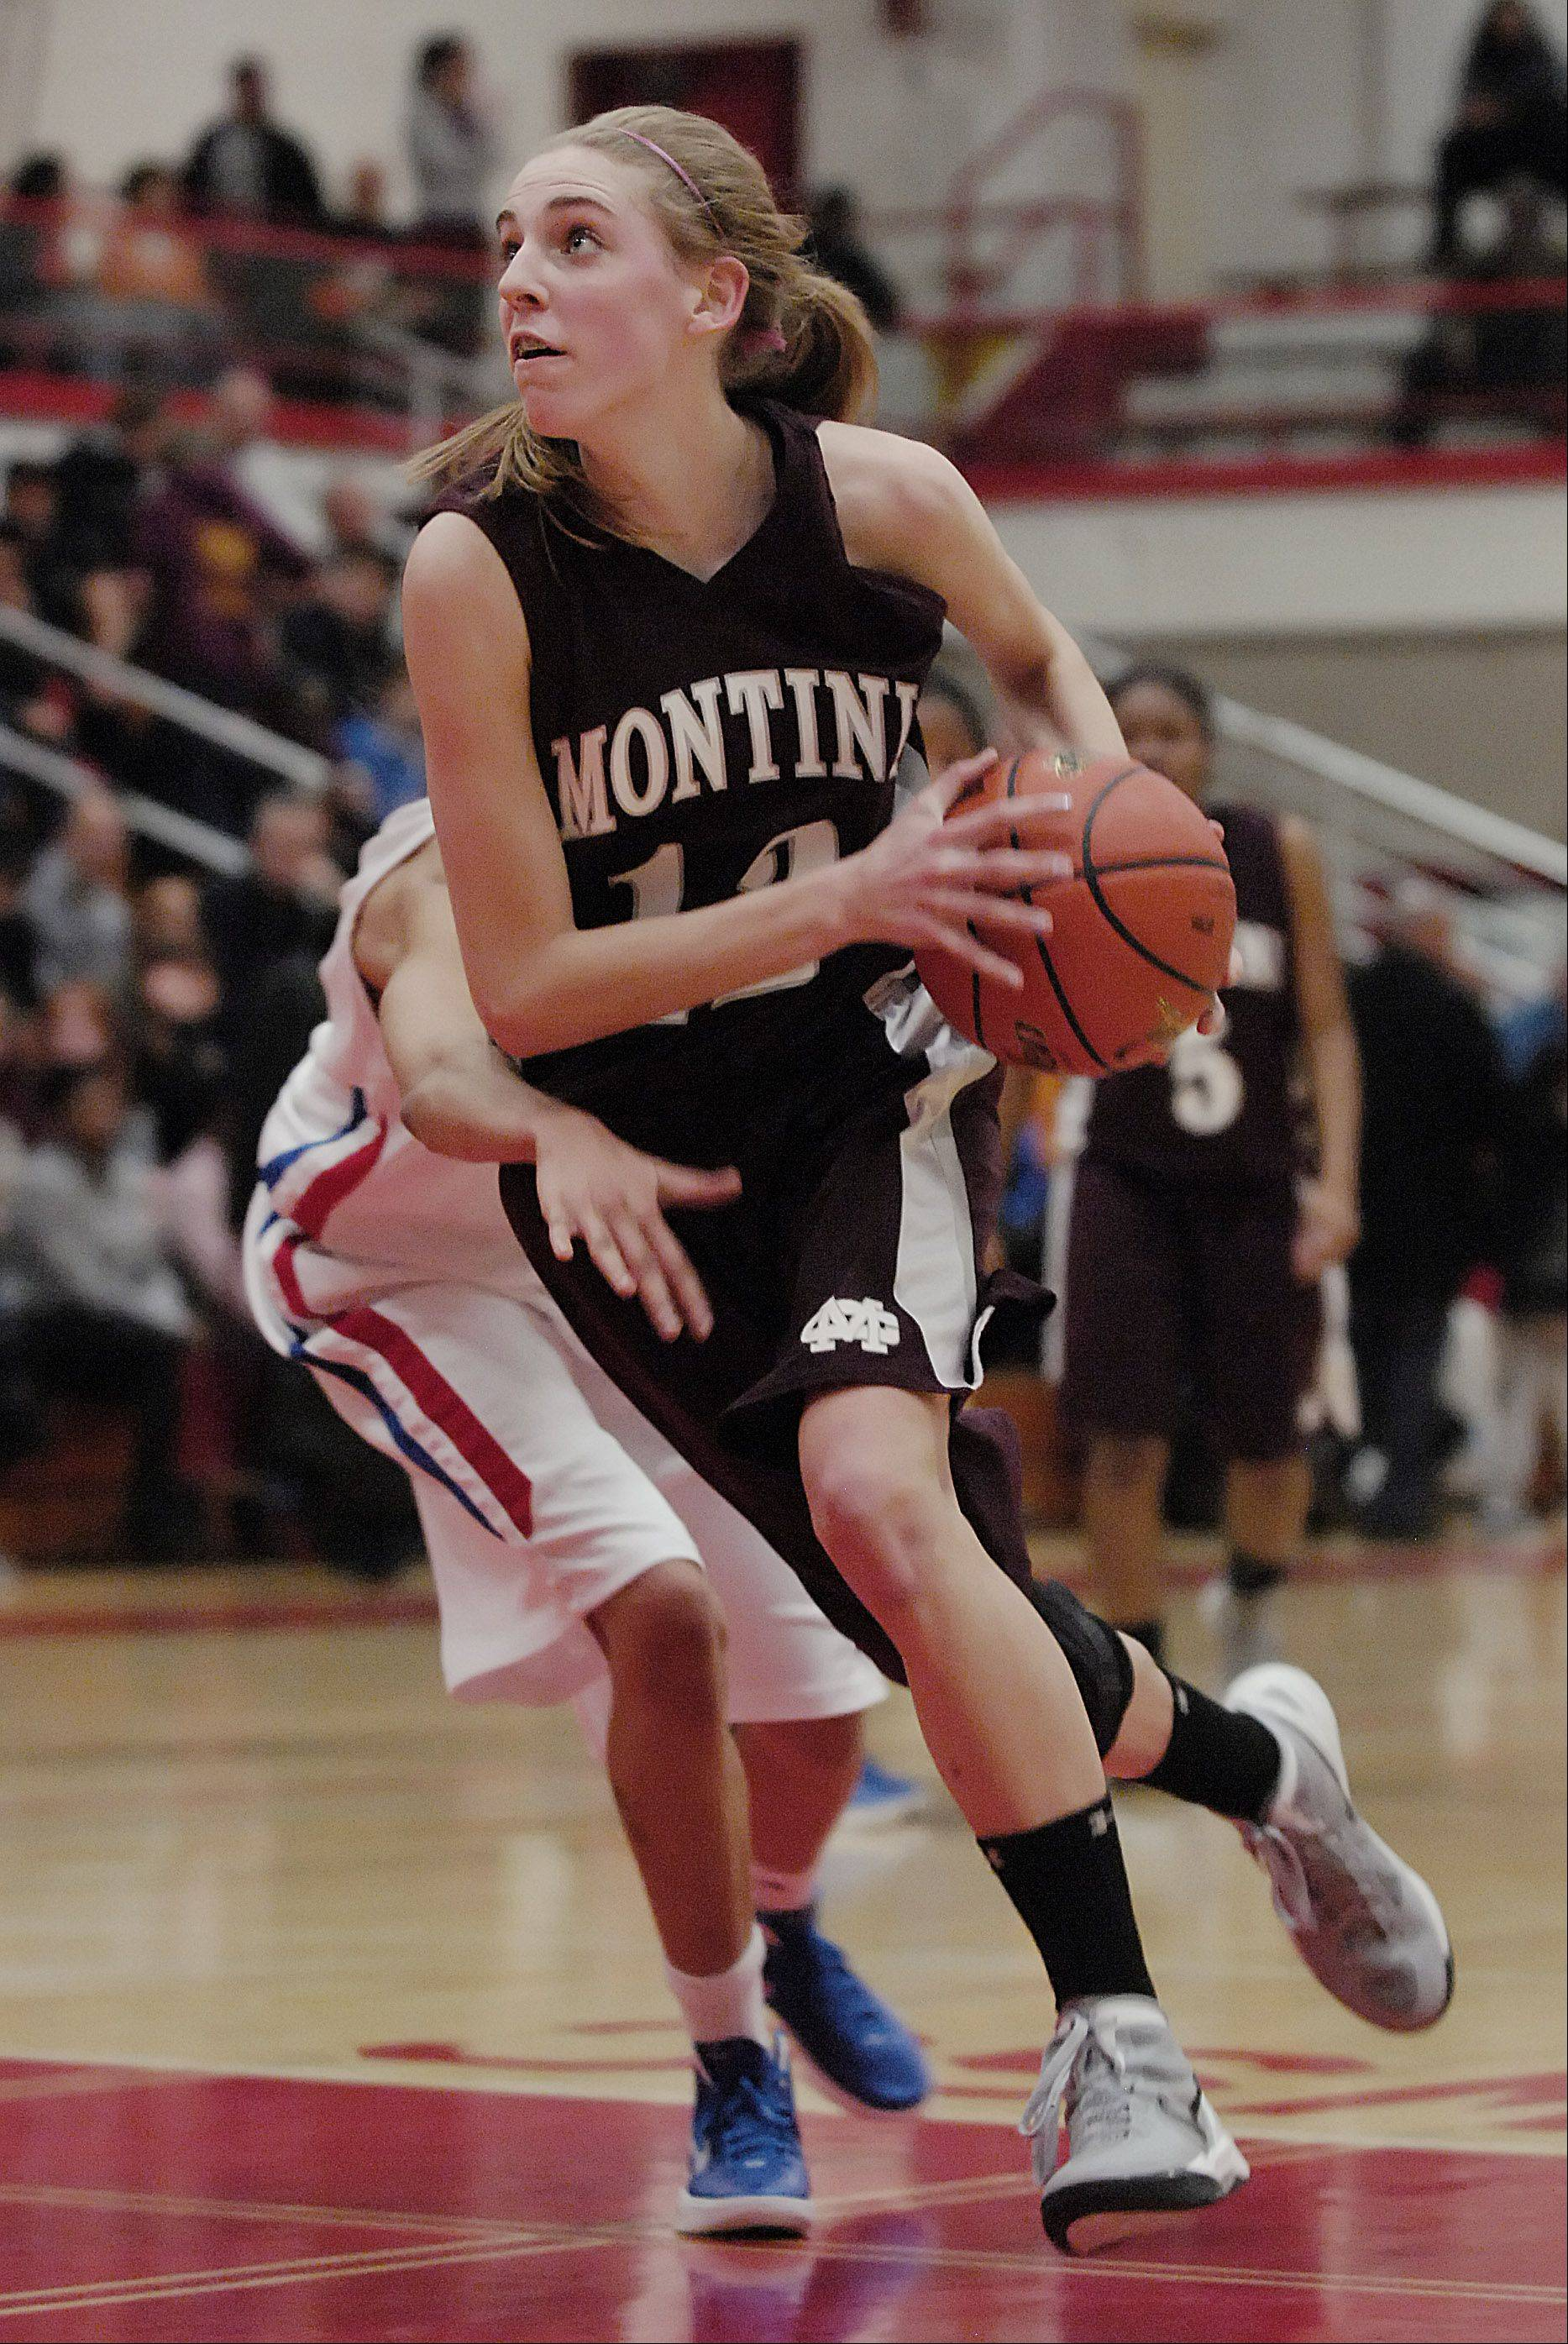 Mark Black/mblack@dailyherald.com � Kelly Karlis of Montini drives to the hoop during their victory over Crane in the girls Class 3A supersectional basketball game Monday, February 27, 2012 at Hinsdale Central.